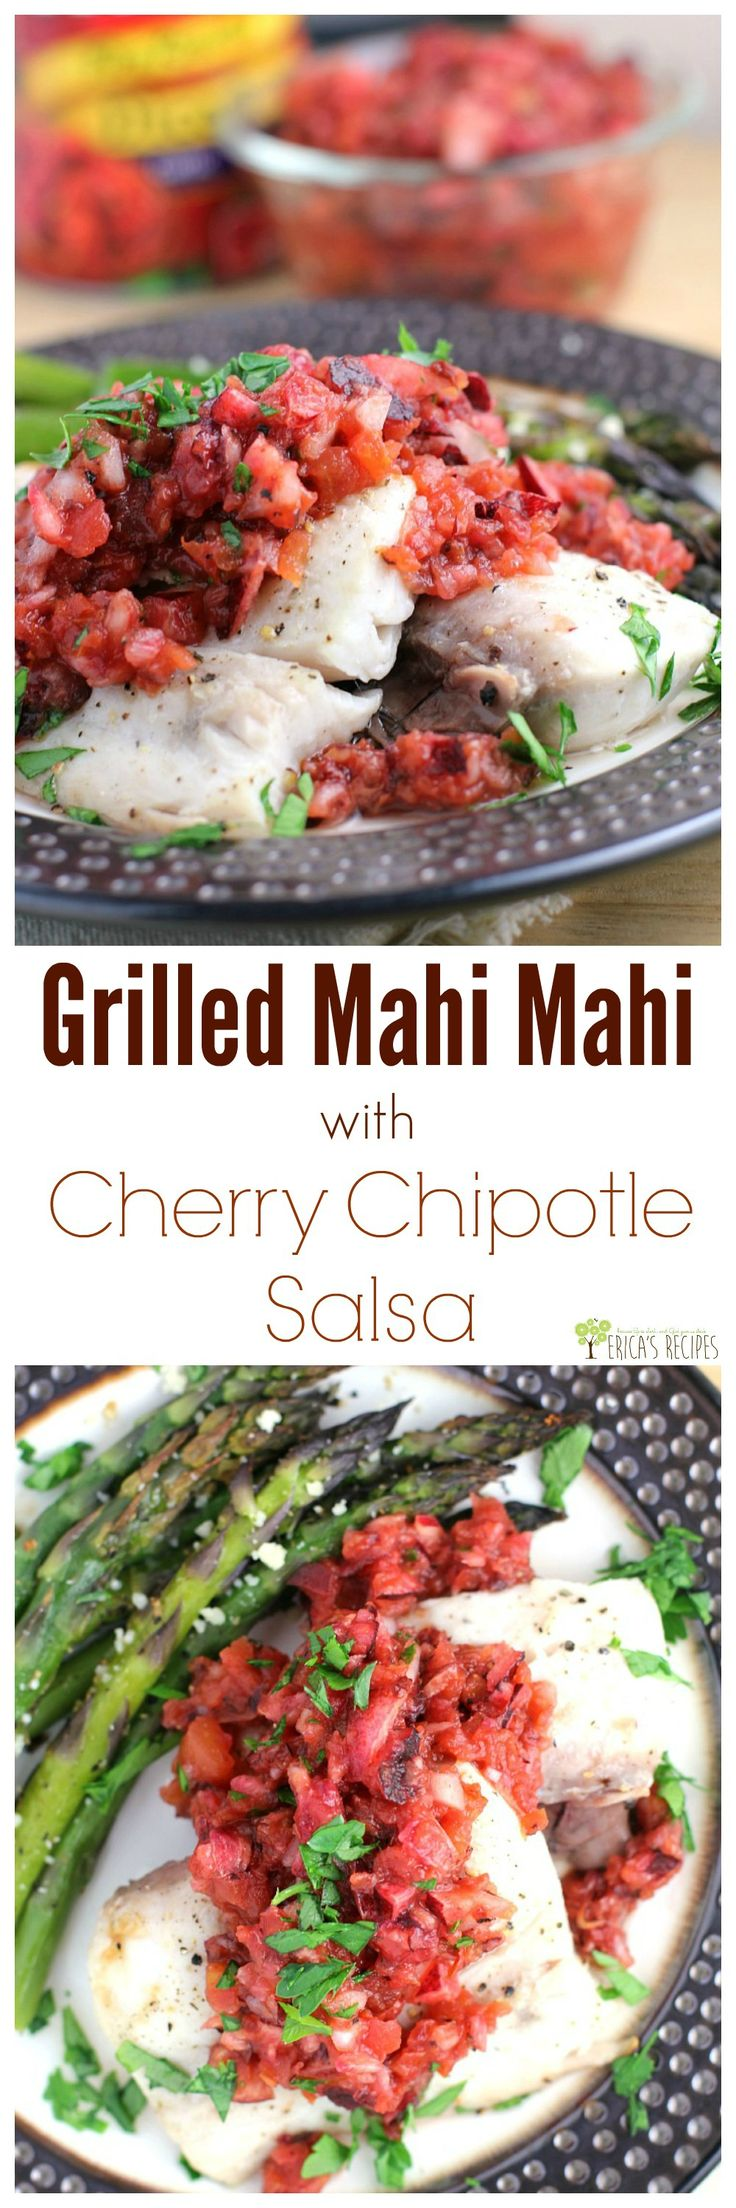 Grilled Mahi Mahi with Cherry Chipotle Salsa from EricasRecipes.com. #HuntsFreshTwists #ad @huntschef